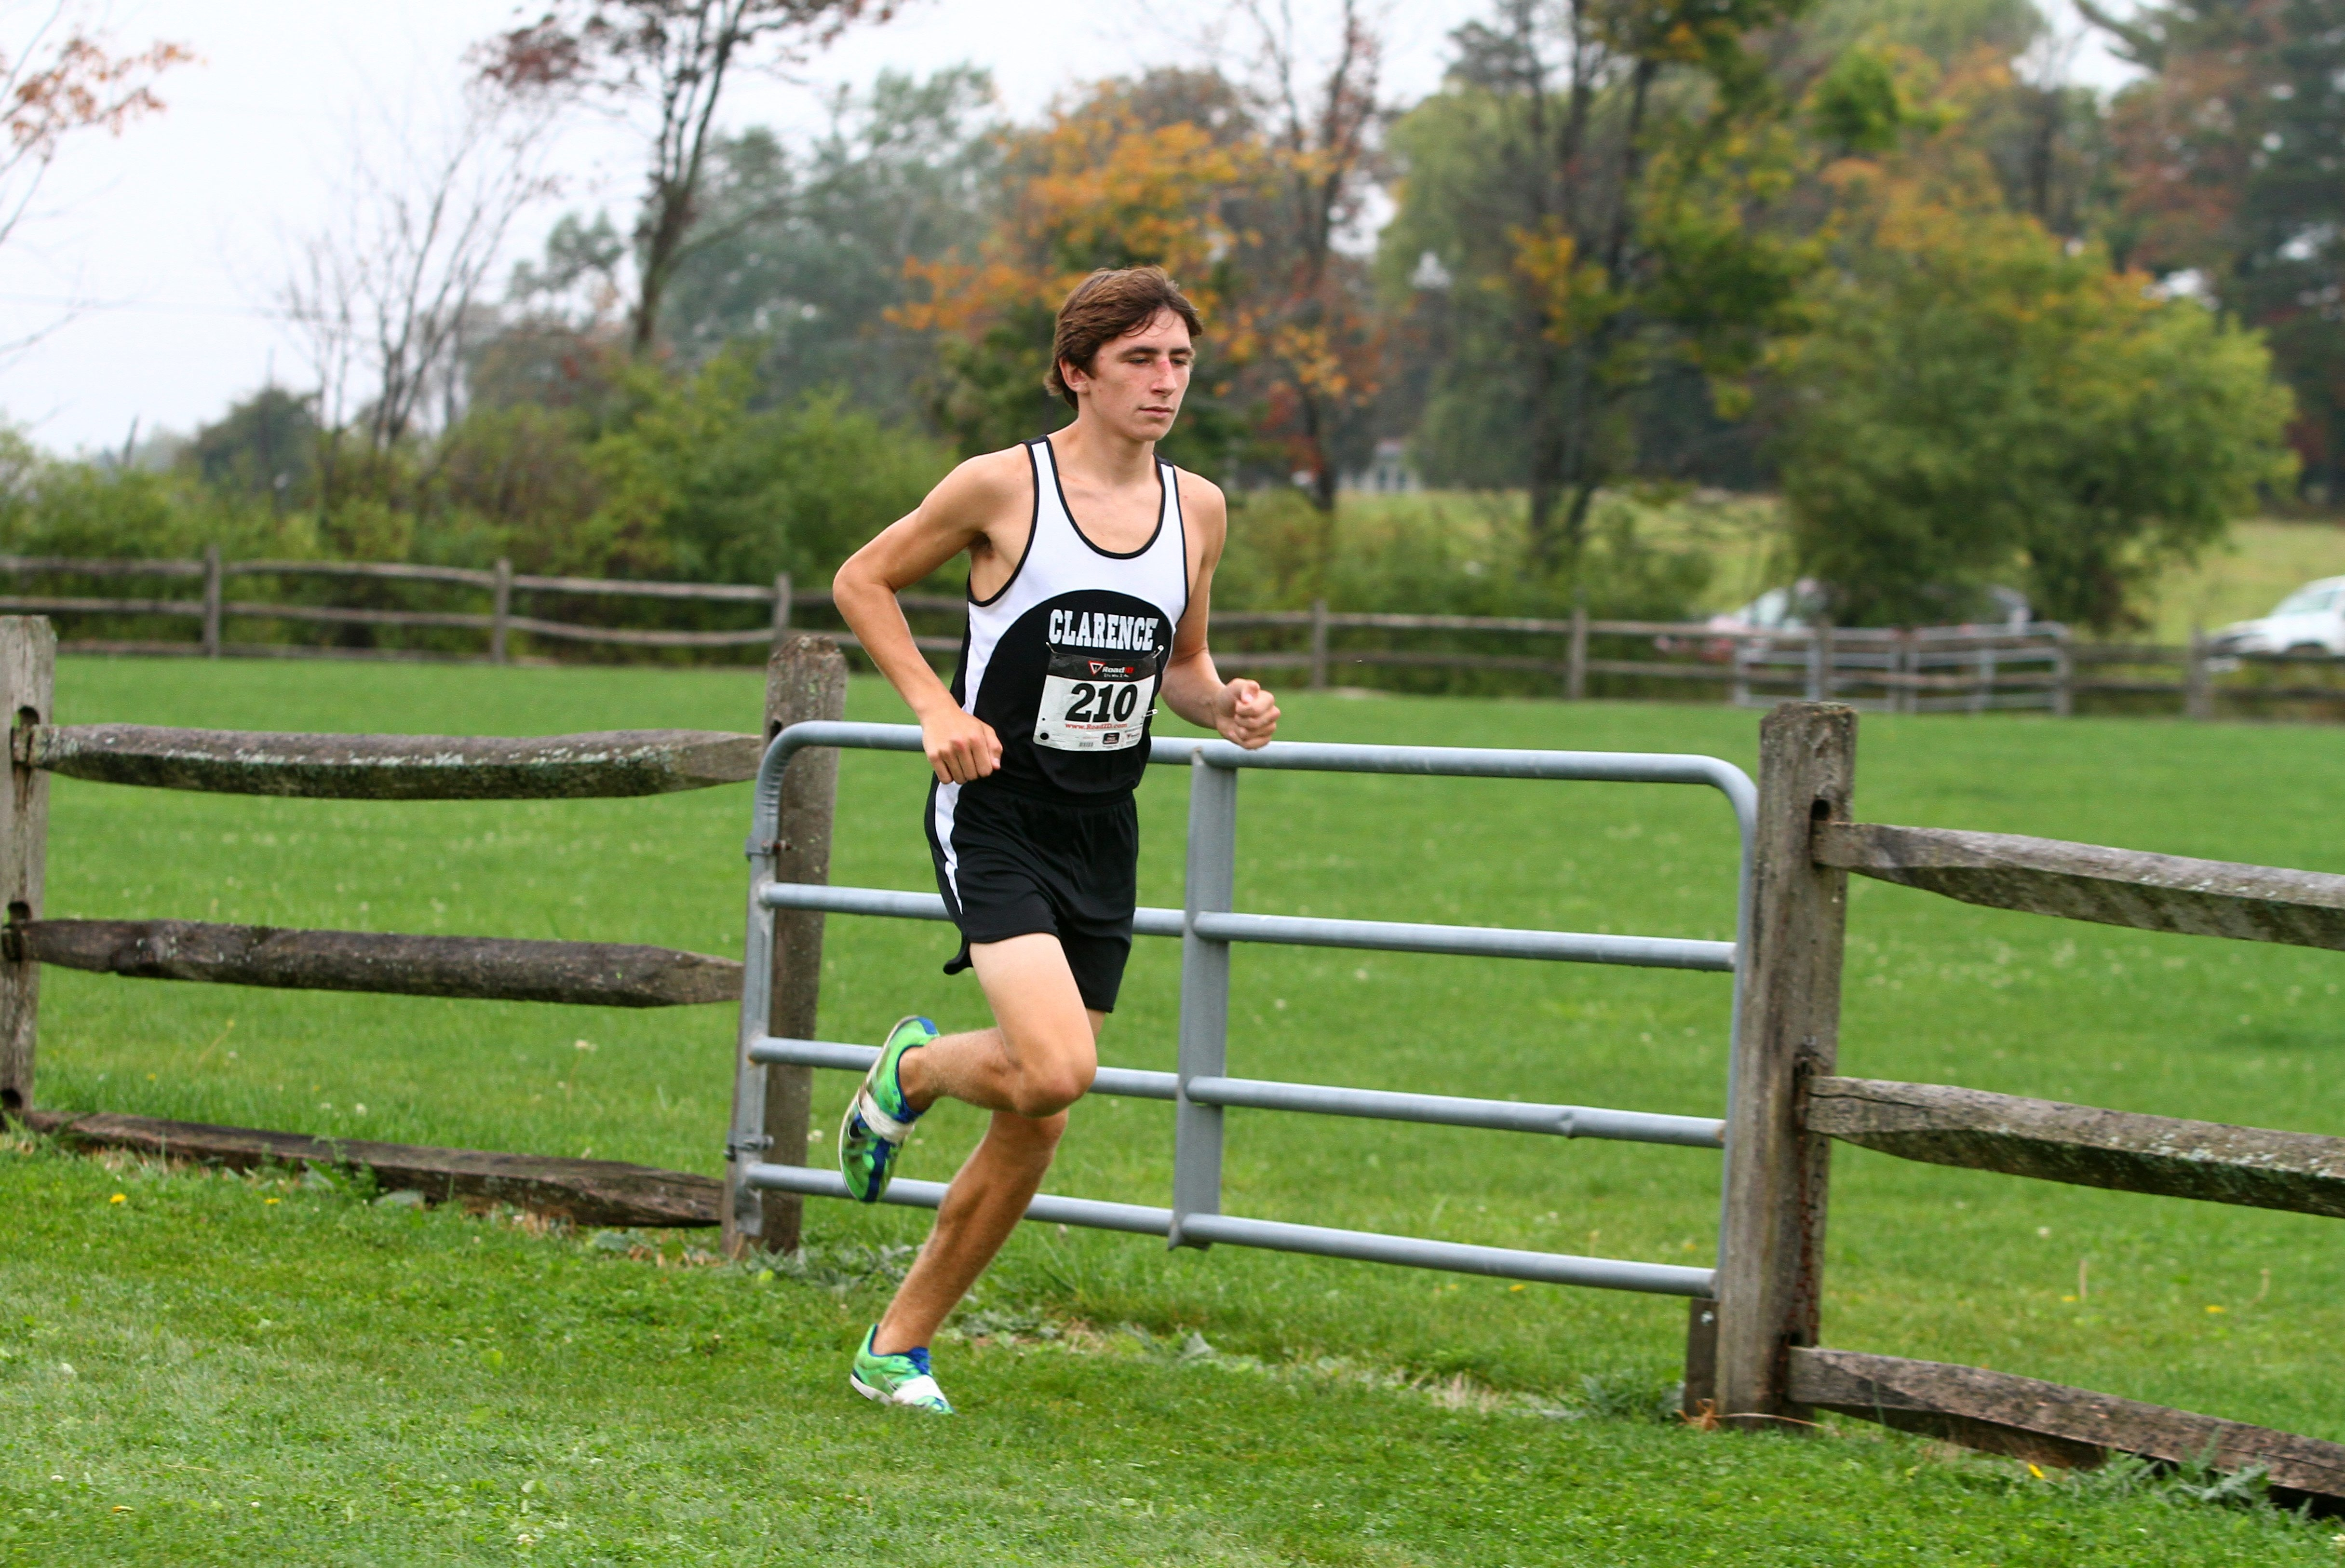 Dan Huben of Clarence won the varsity race at Knox Farms covering 3.1 miles in 15:56.28. The Red Devils had three in the top 10 to also take the team title.